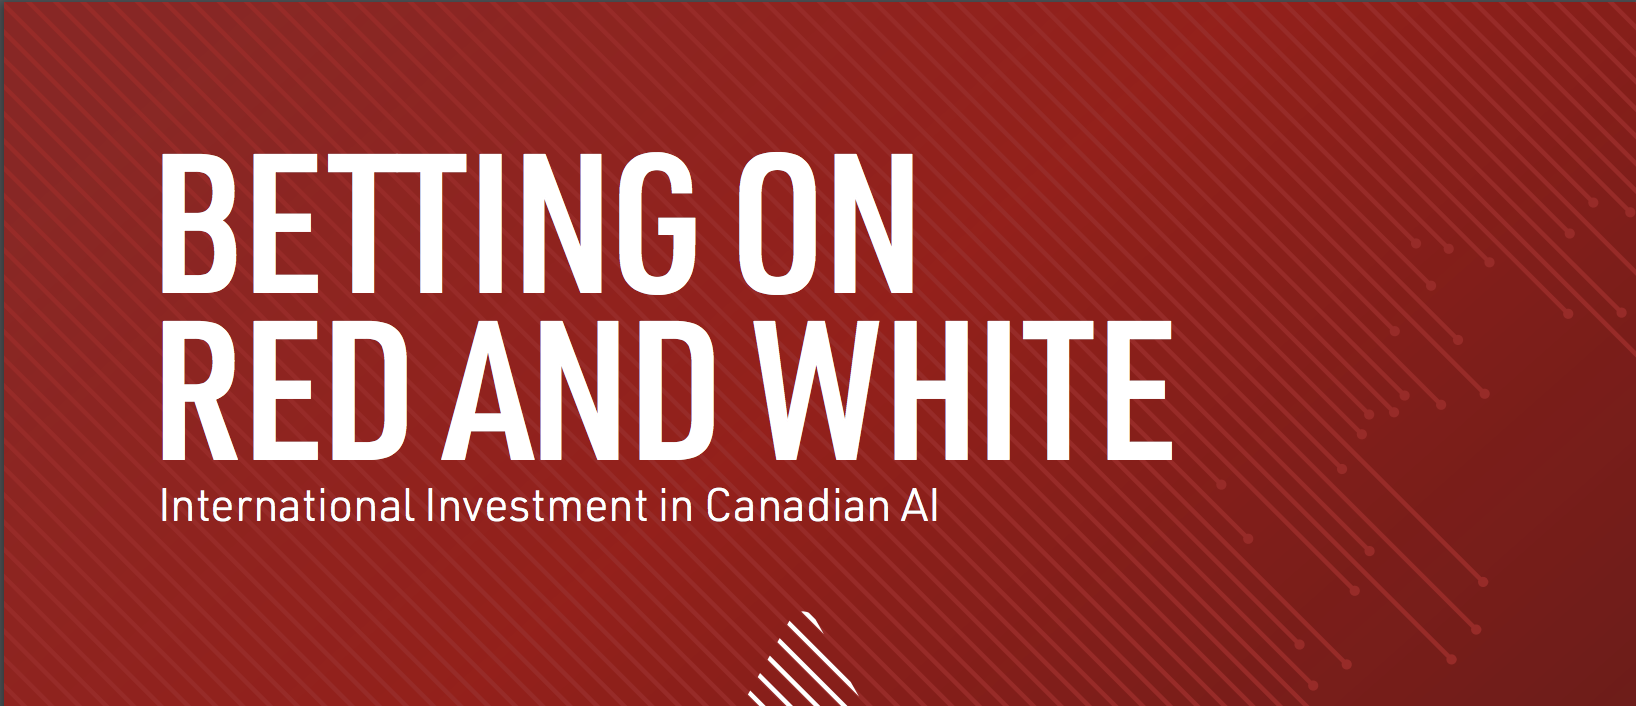 Canada is Increasingly a Global Hub for AI Foreign Investment: New ICTC Study